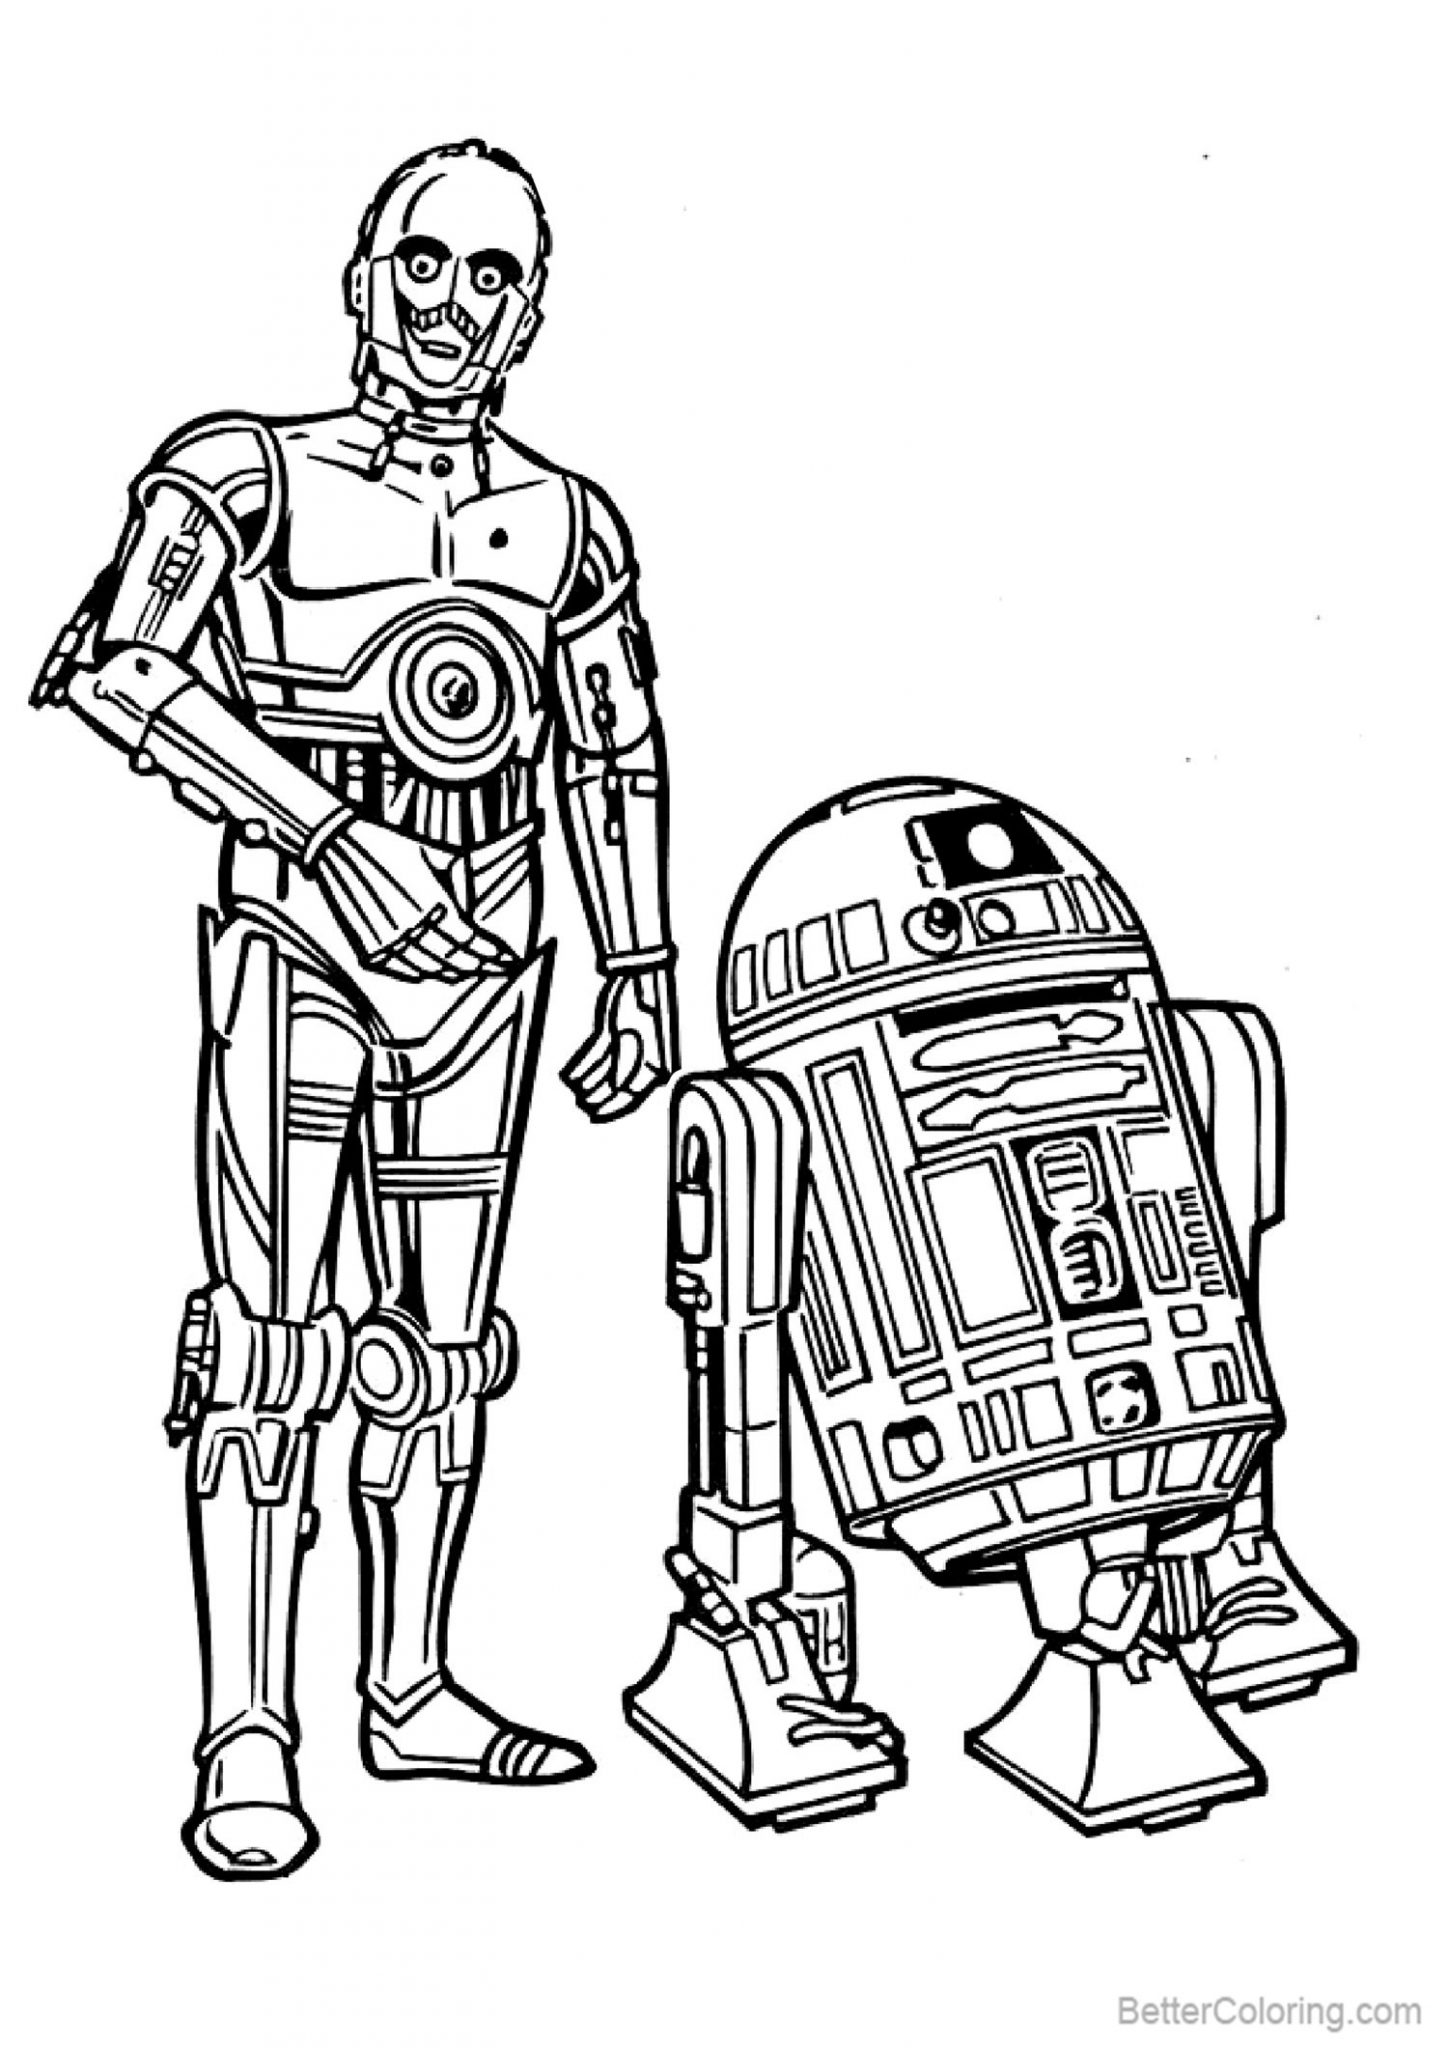 R2d2 Coloring Pages with Robot Man - Free Printable ...